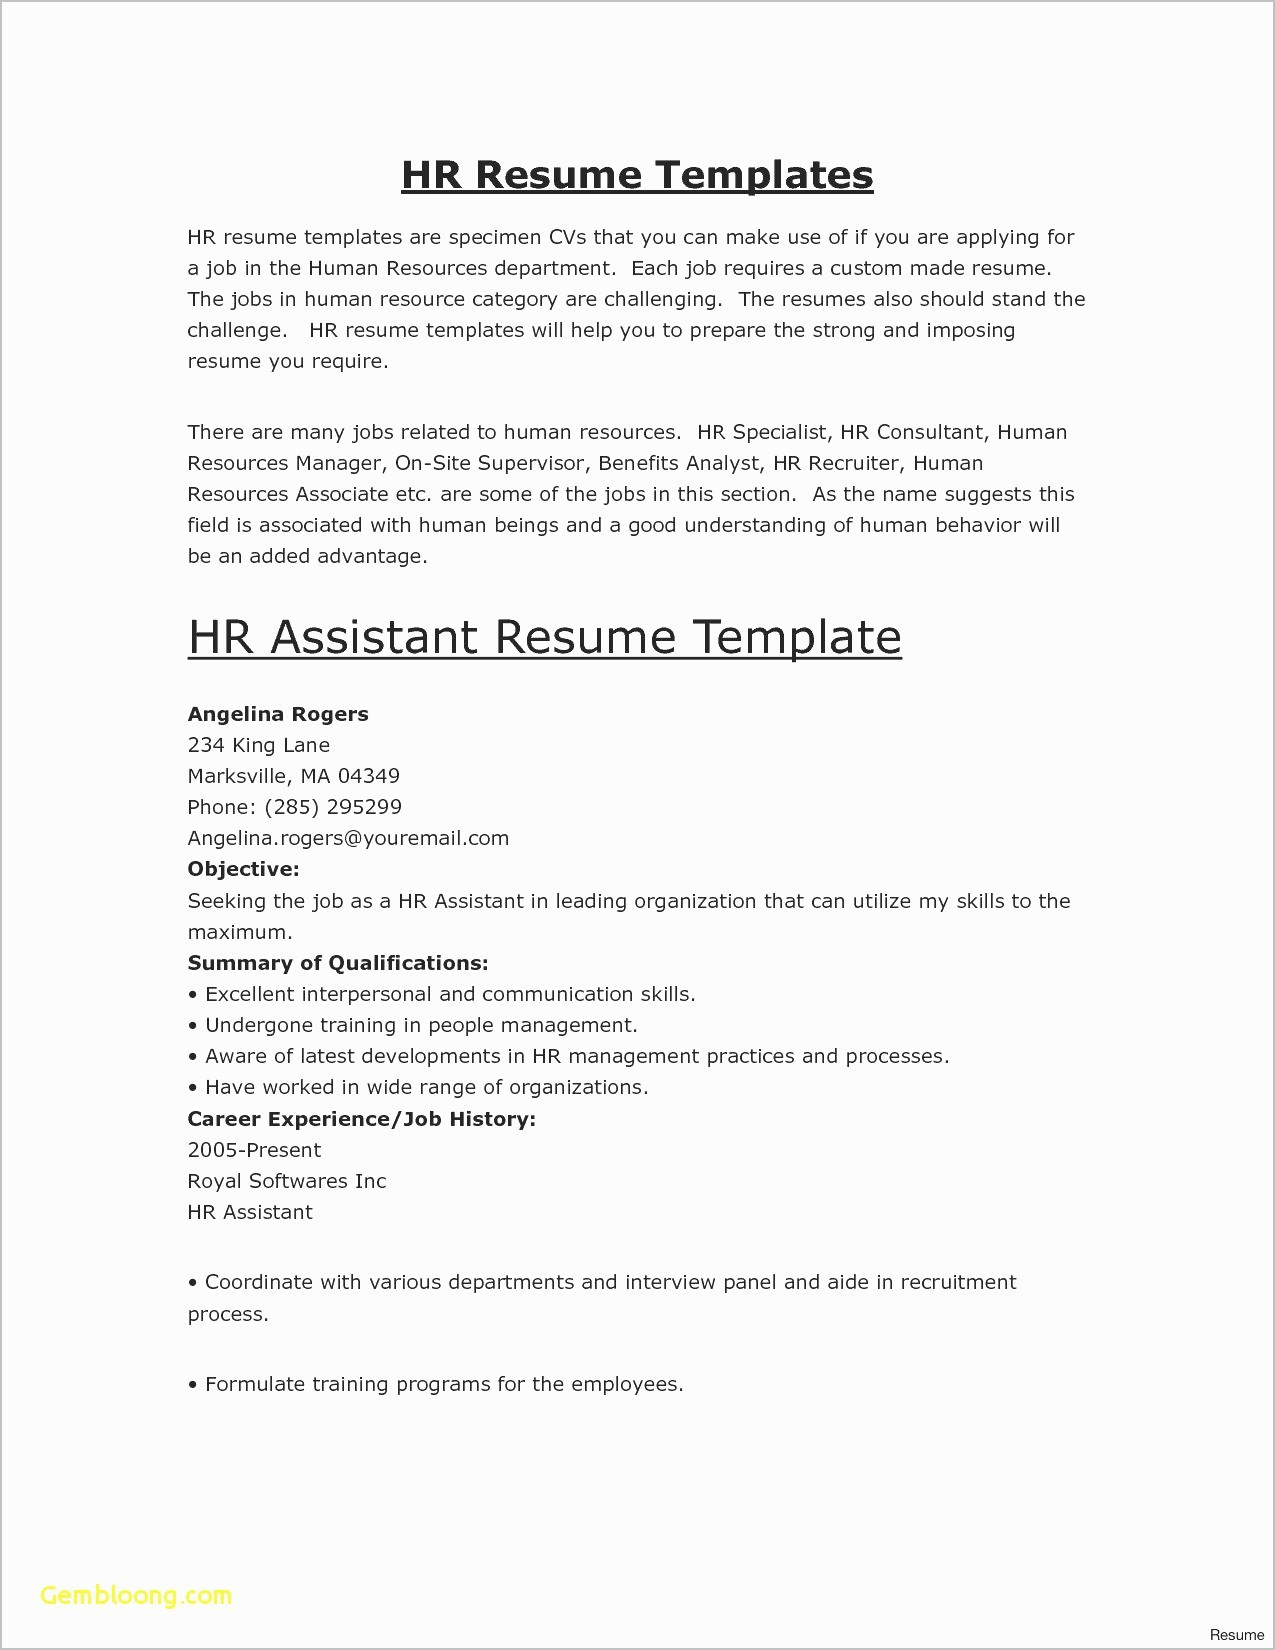 Medical assistant Resume Template - Legal assistant Resume Fresh Medical assistant Resumes New Medical